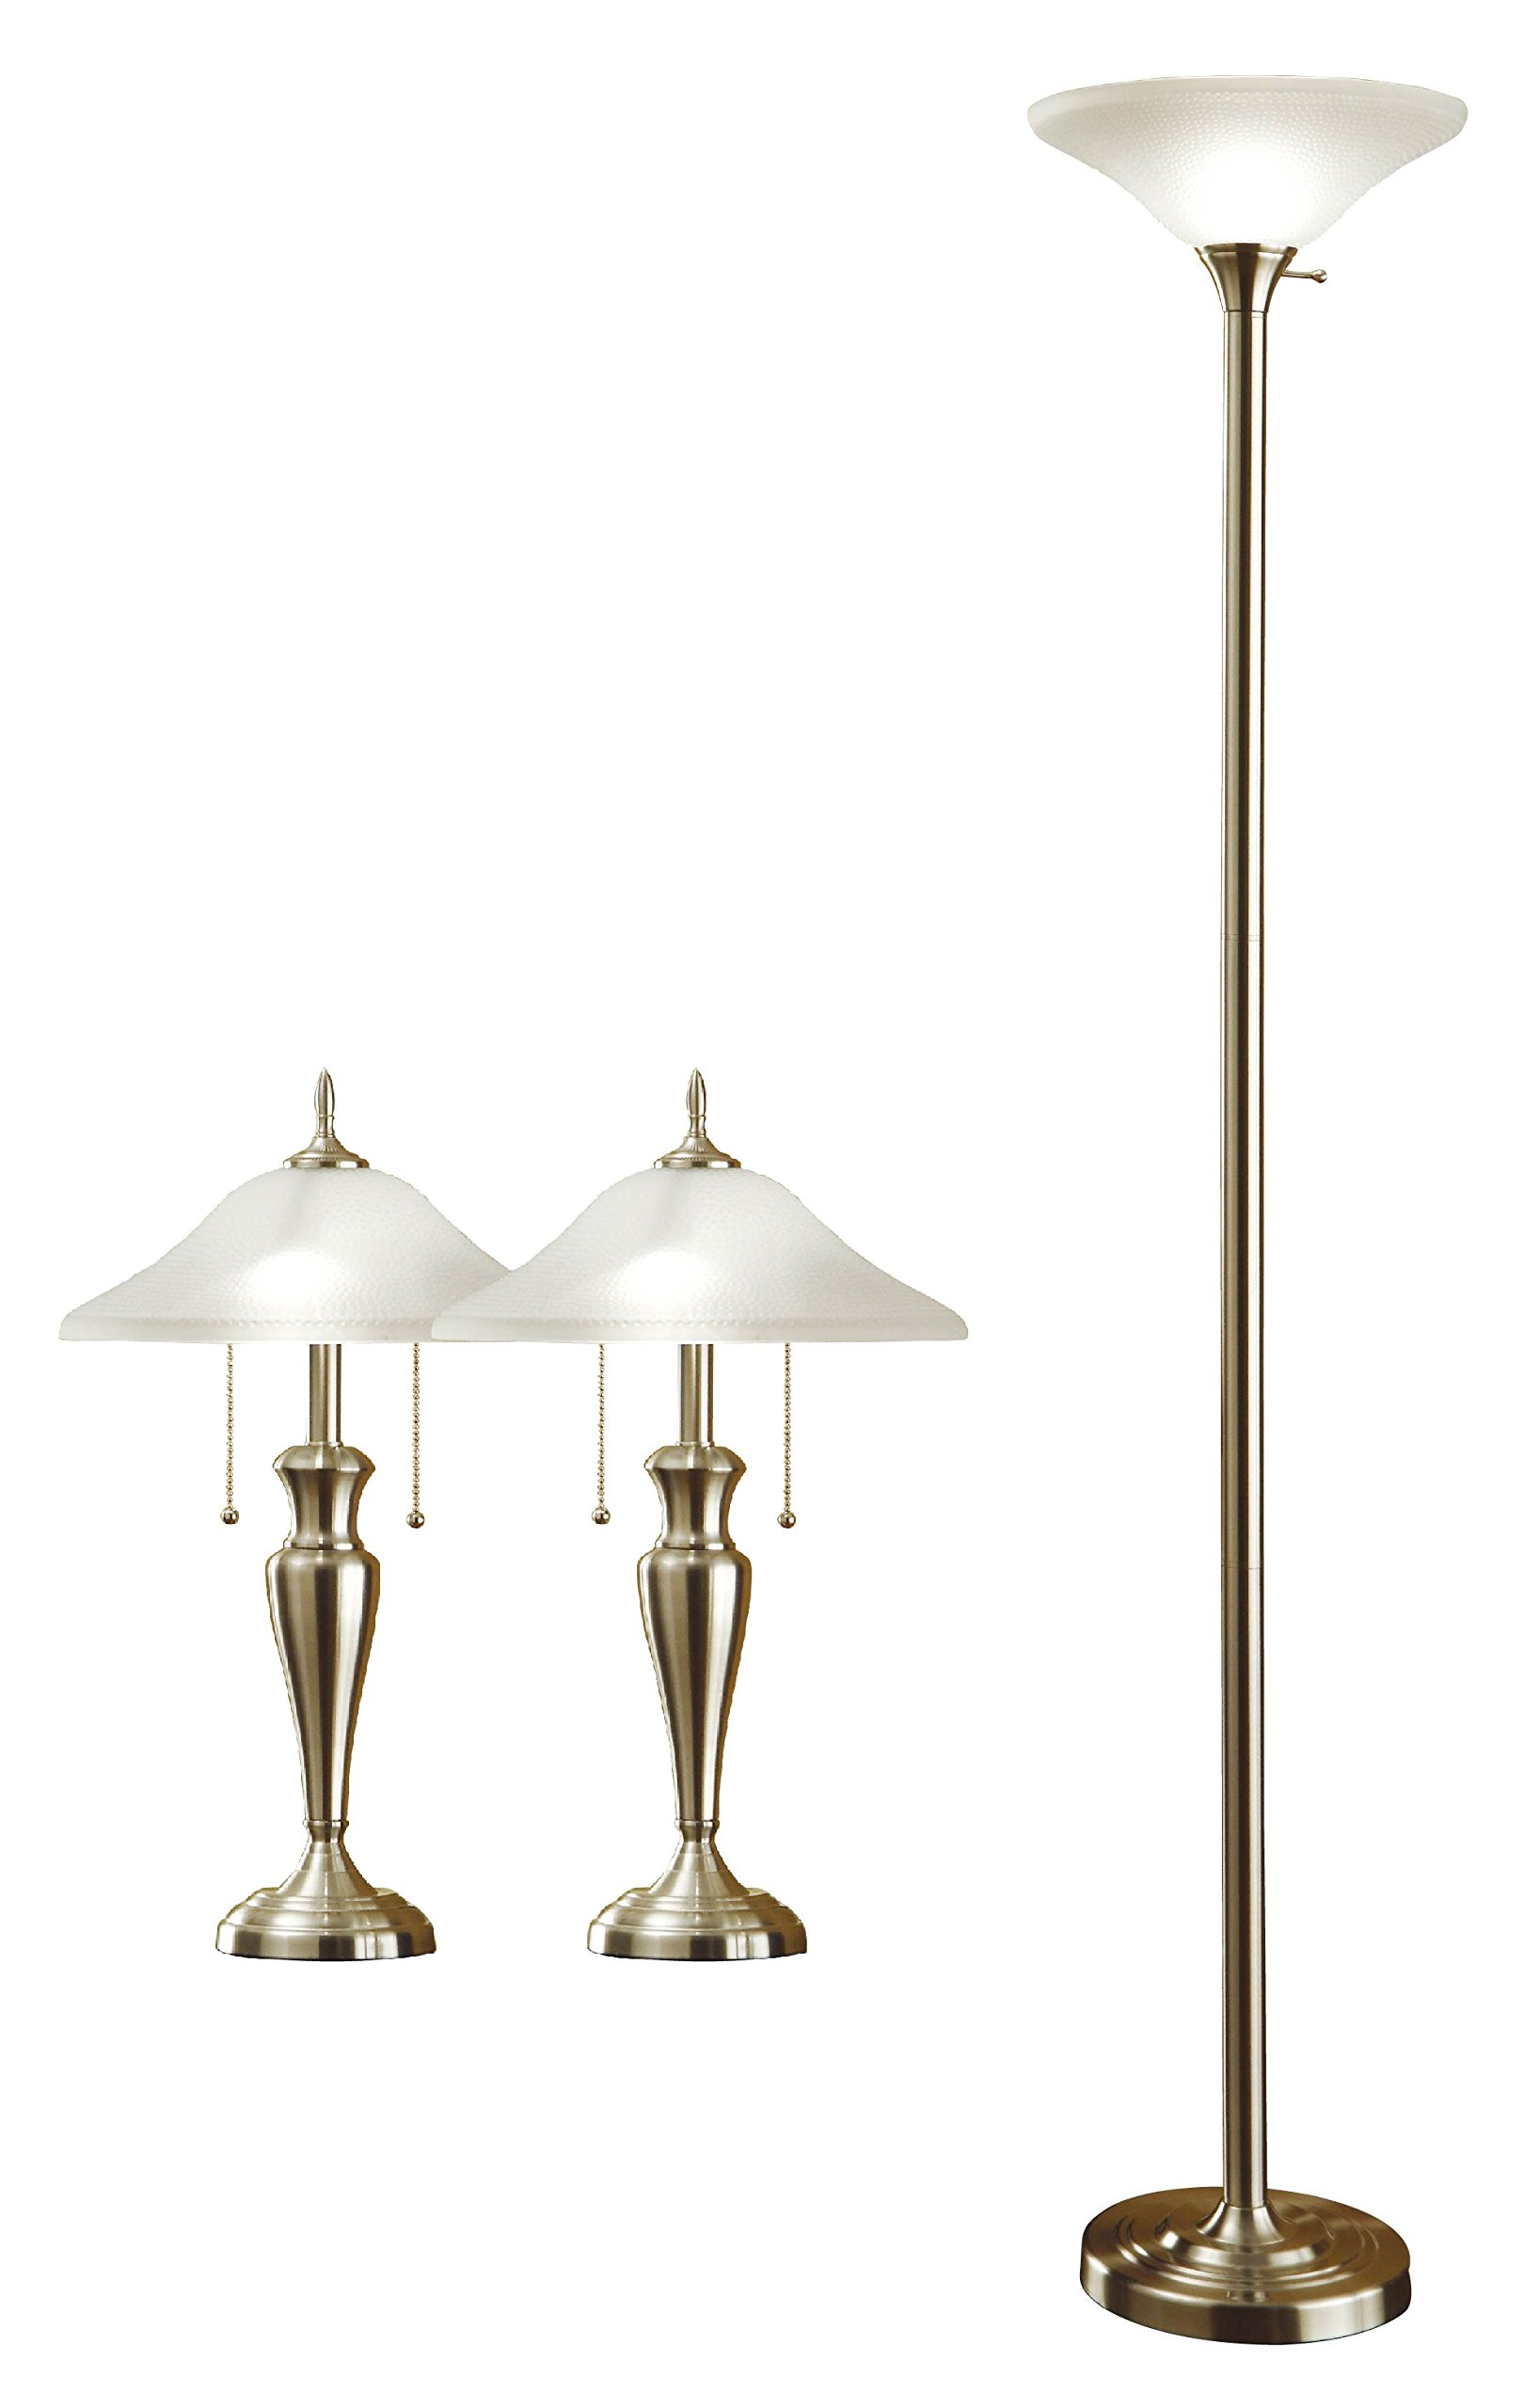 Artiva USA Triple-Pack, Classic Cordinates, 71-Inch Torchiere and 24-Inch Table Lamps Set in Brushed Steel Finish with Quality Hammered Glass Shades by Artiva USA